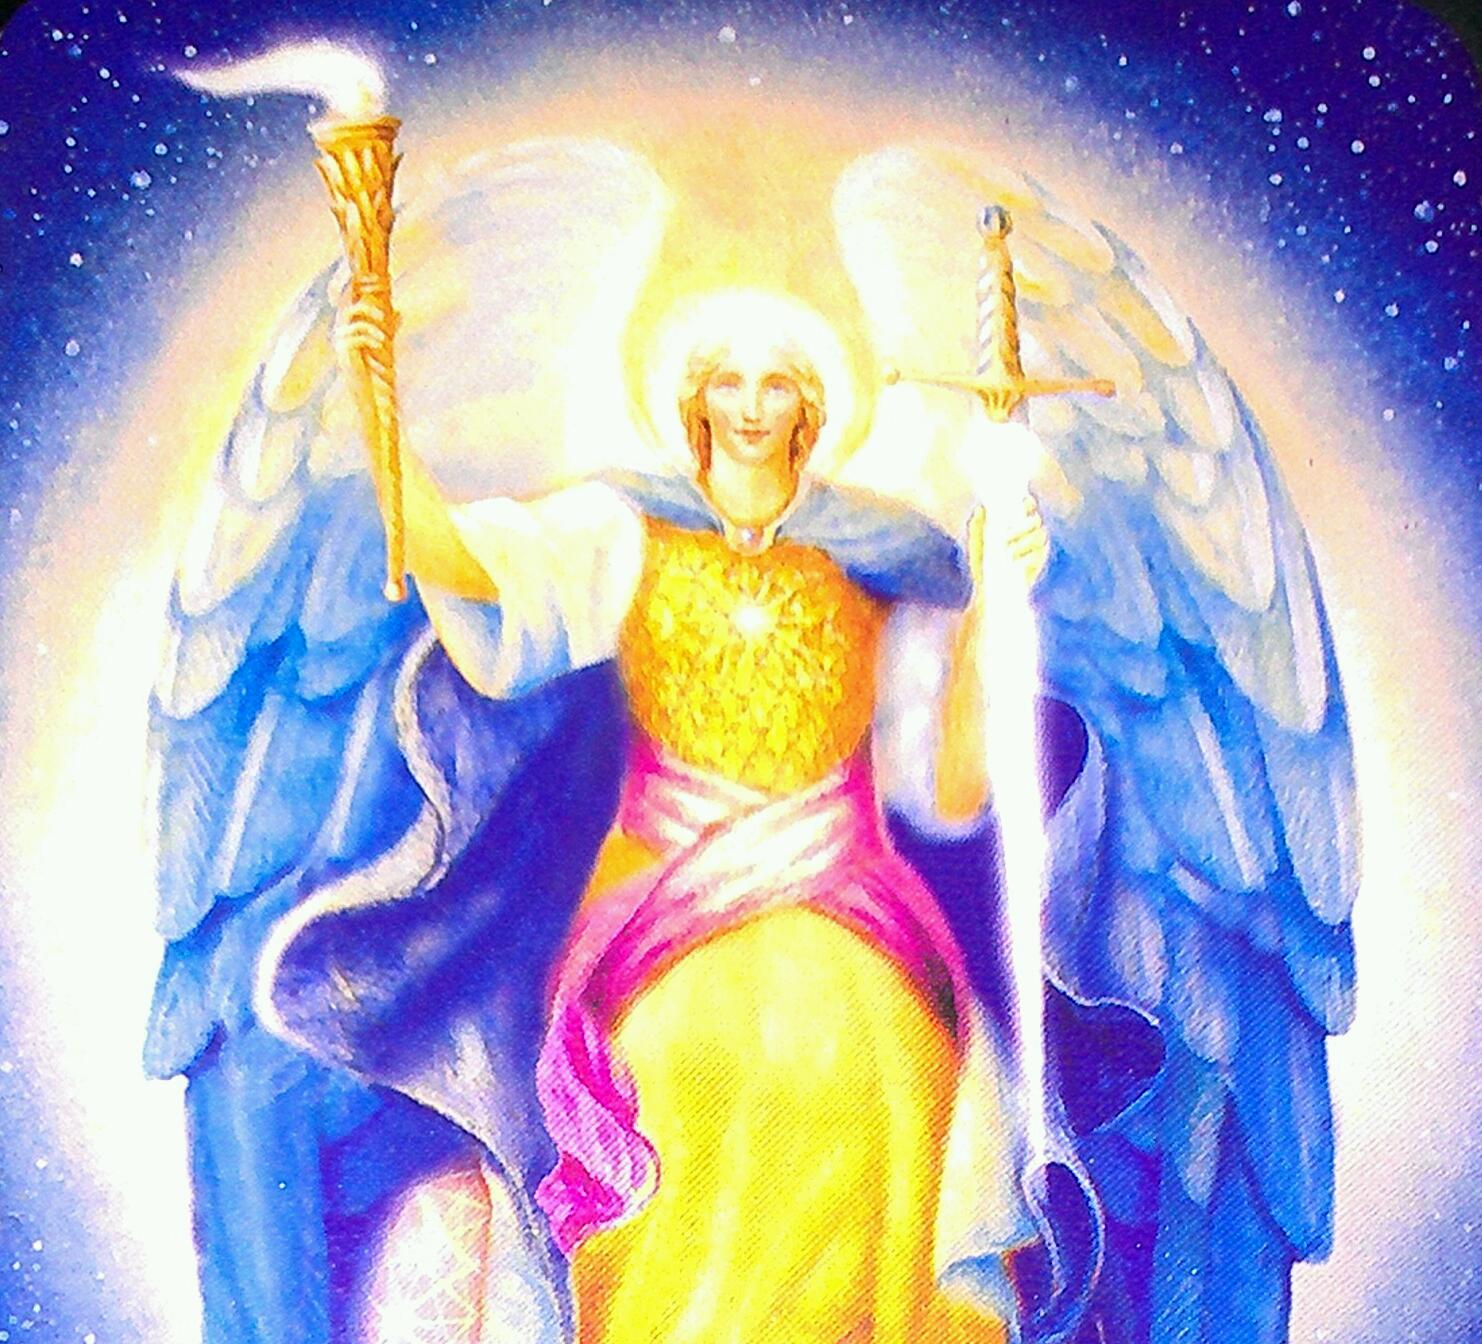 Archangel Michael card image courtesy of Doreen Virtue's Archangel Oracle Card Deck